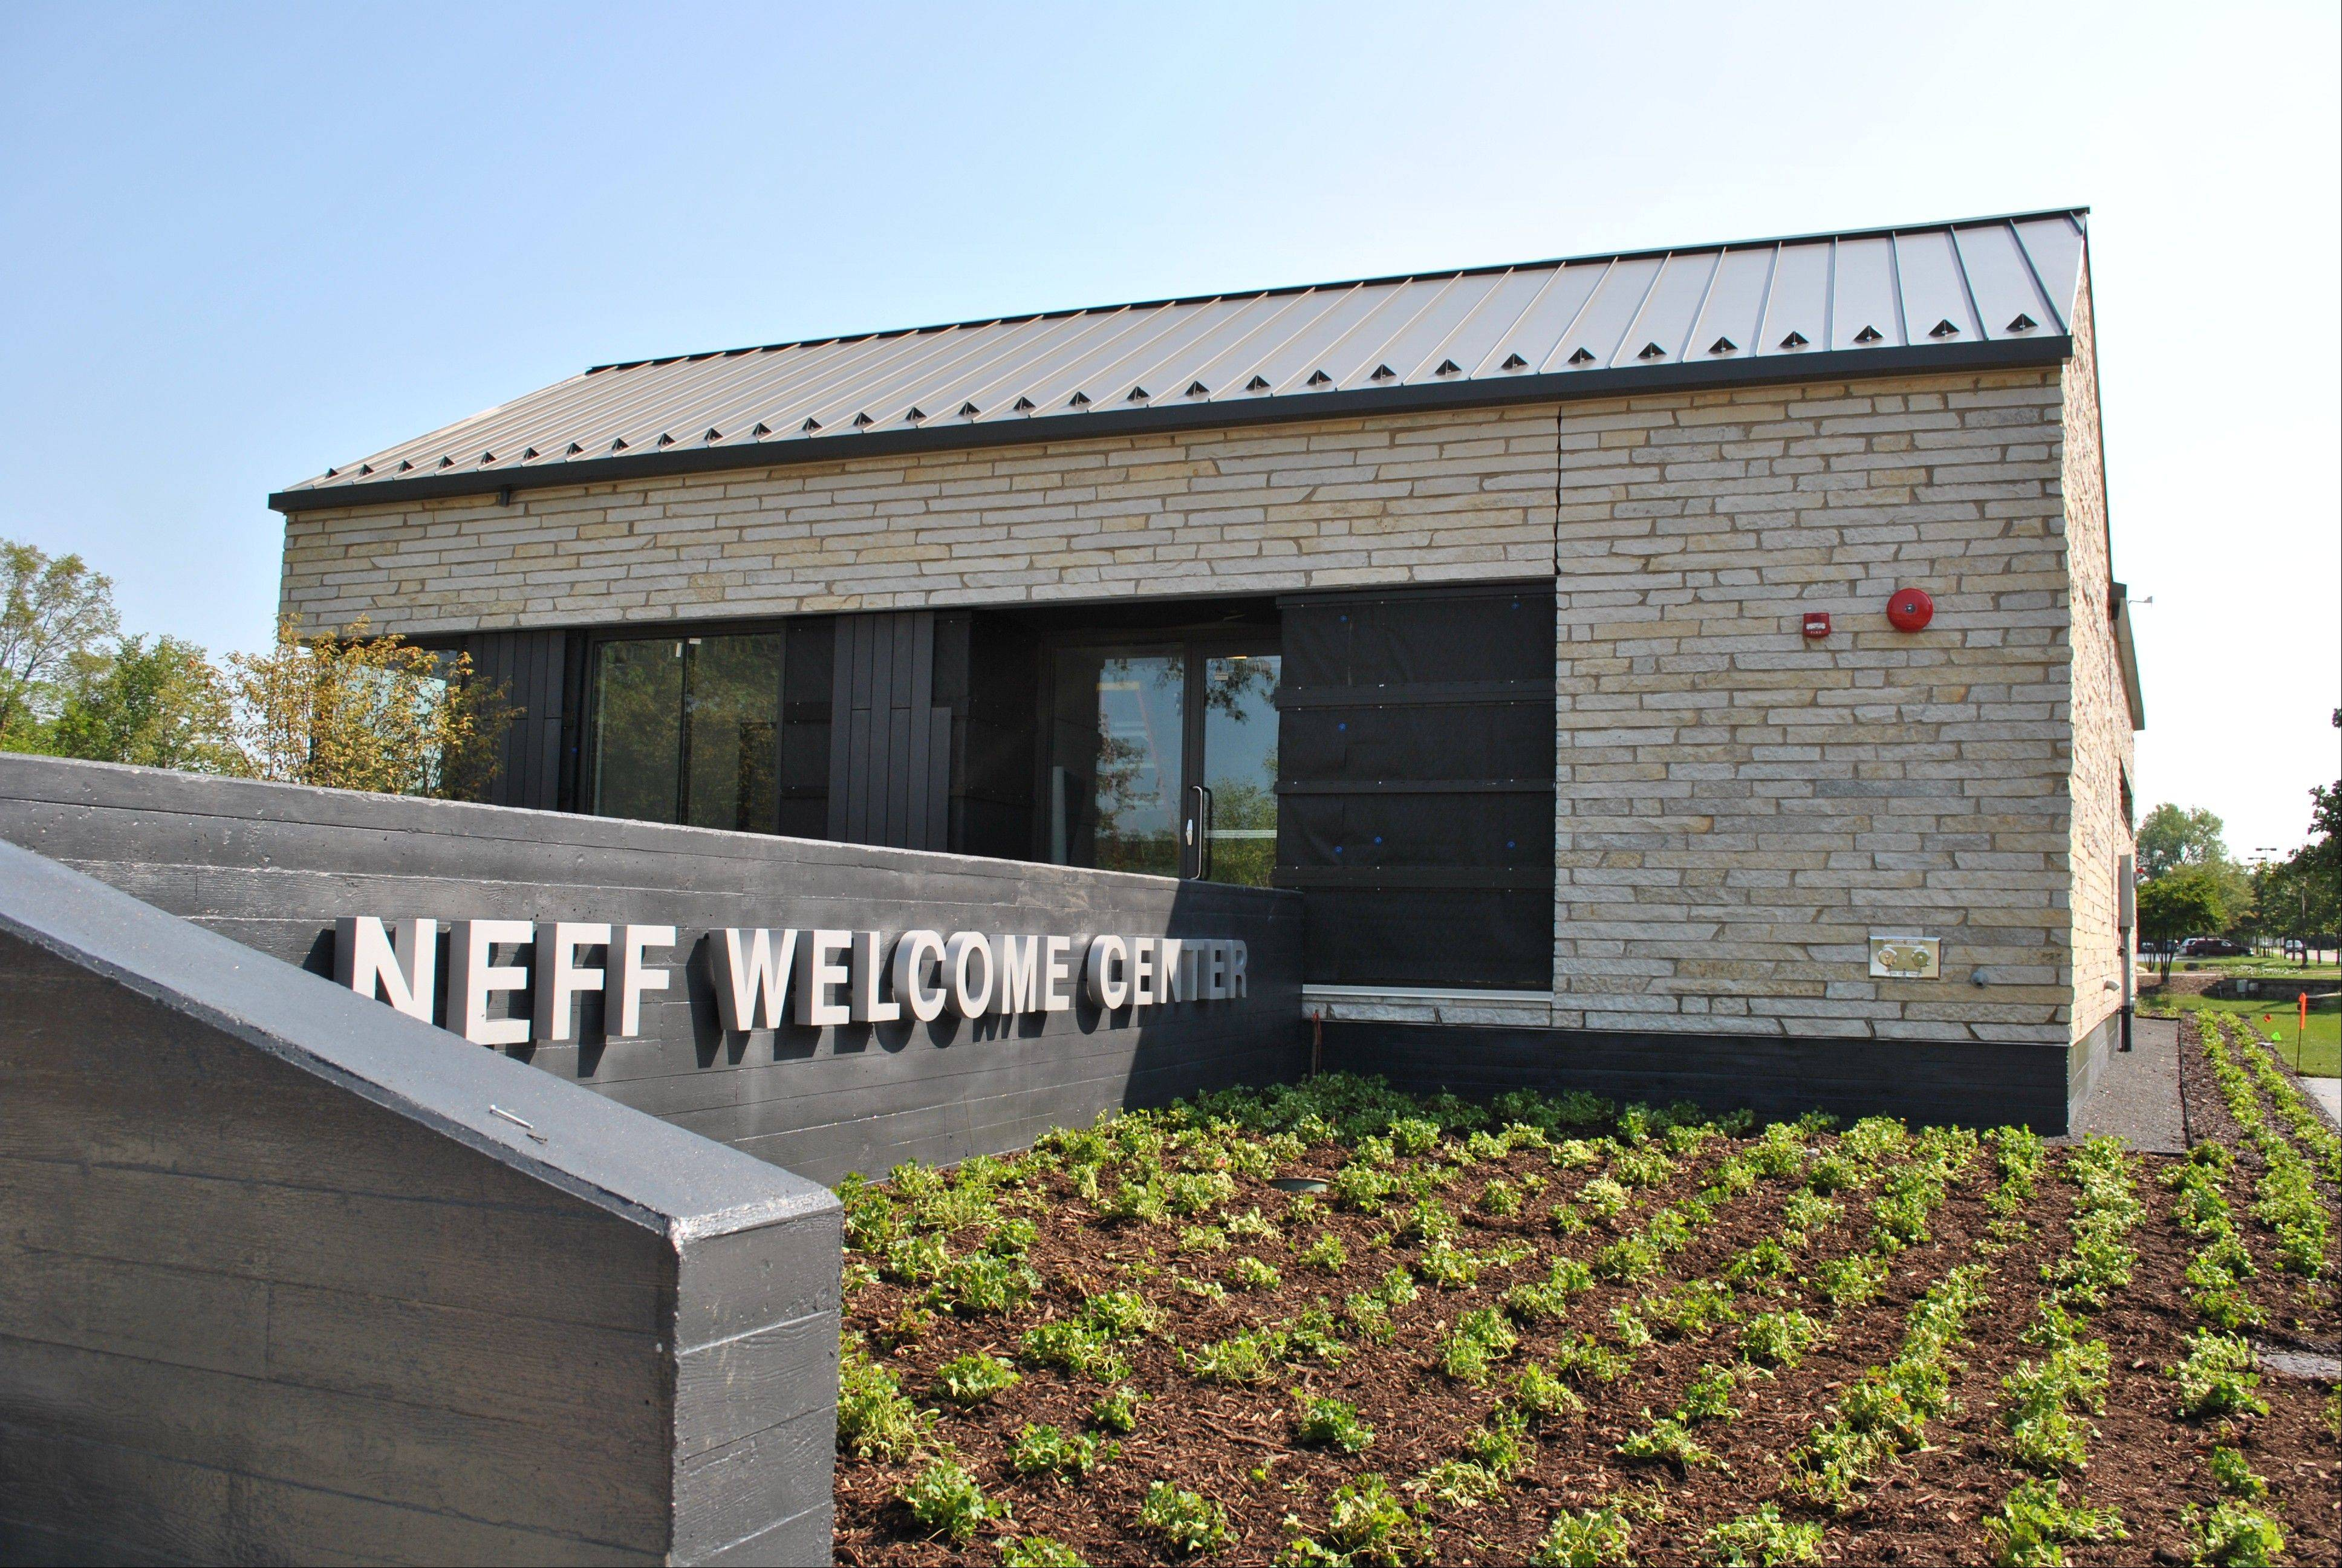 Visitors can get a close look at Benedictine University's new Neff Welcome Center during a Monday open house.